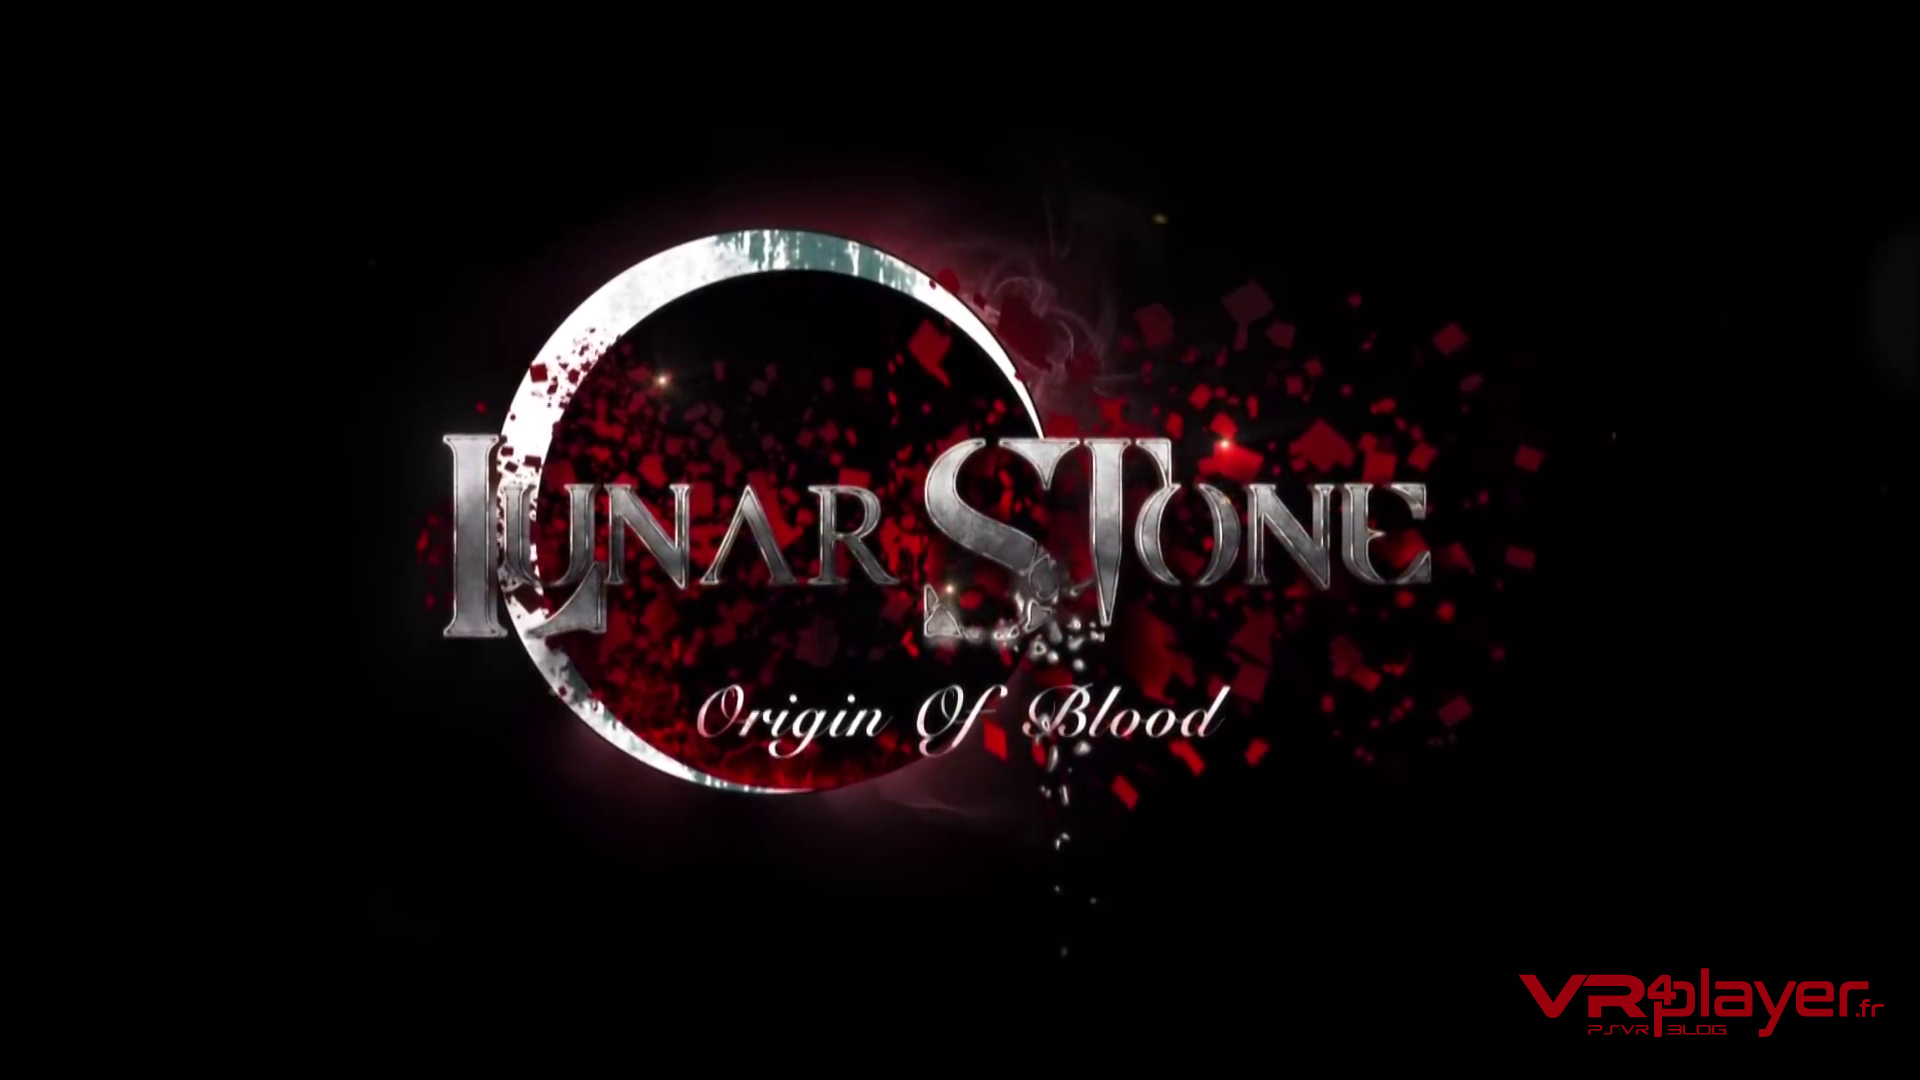 Lunar Stone Origin of Blood sur PSVR vrplayer.fr